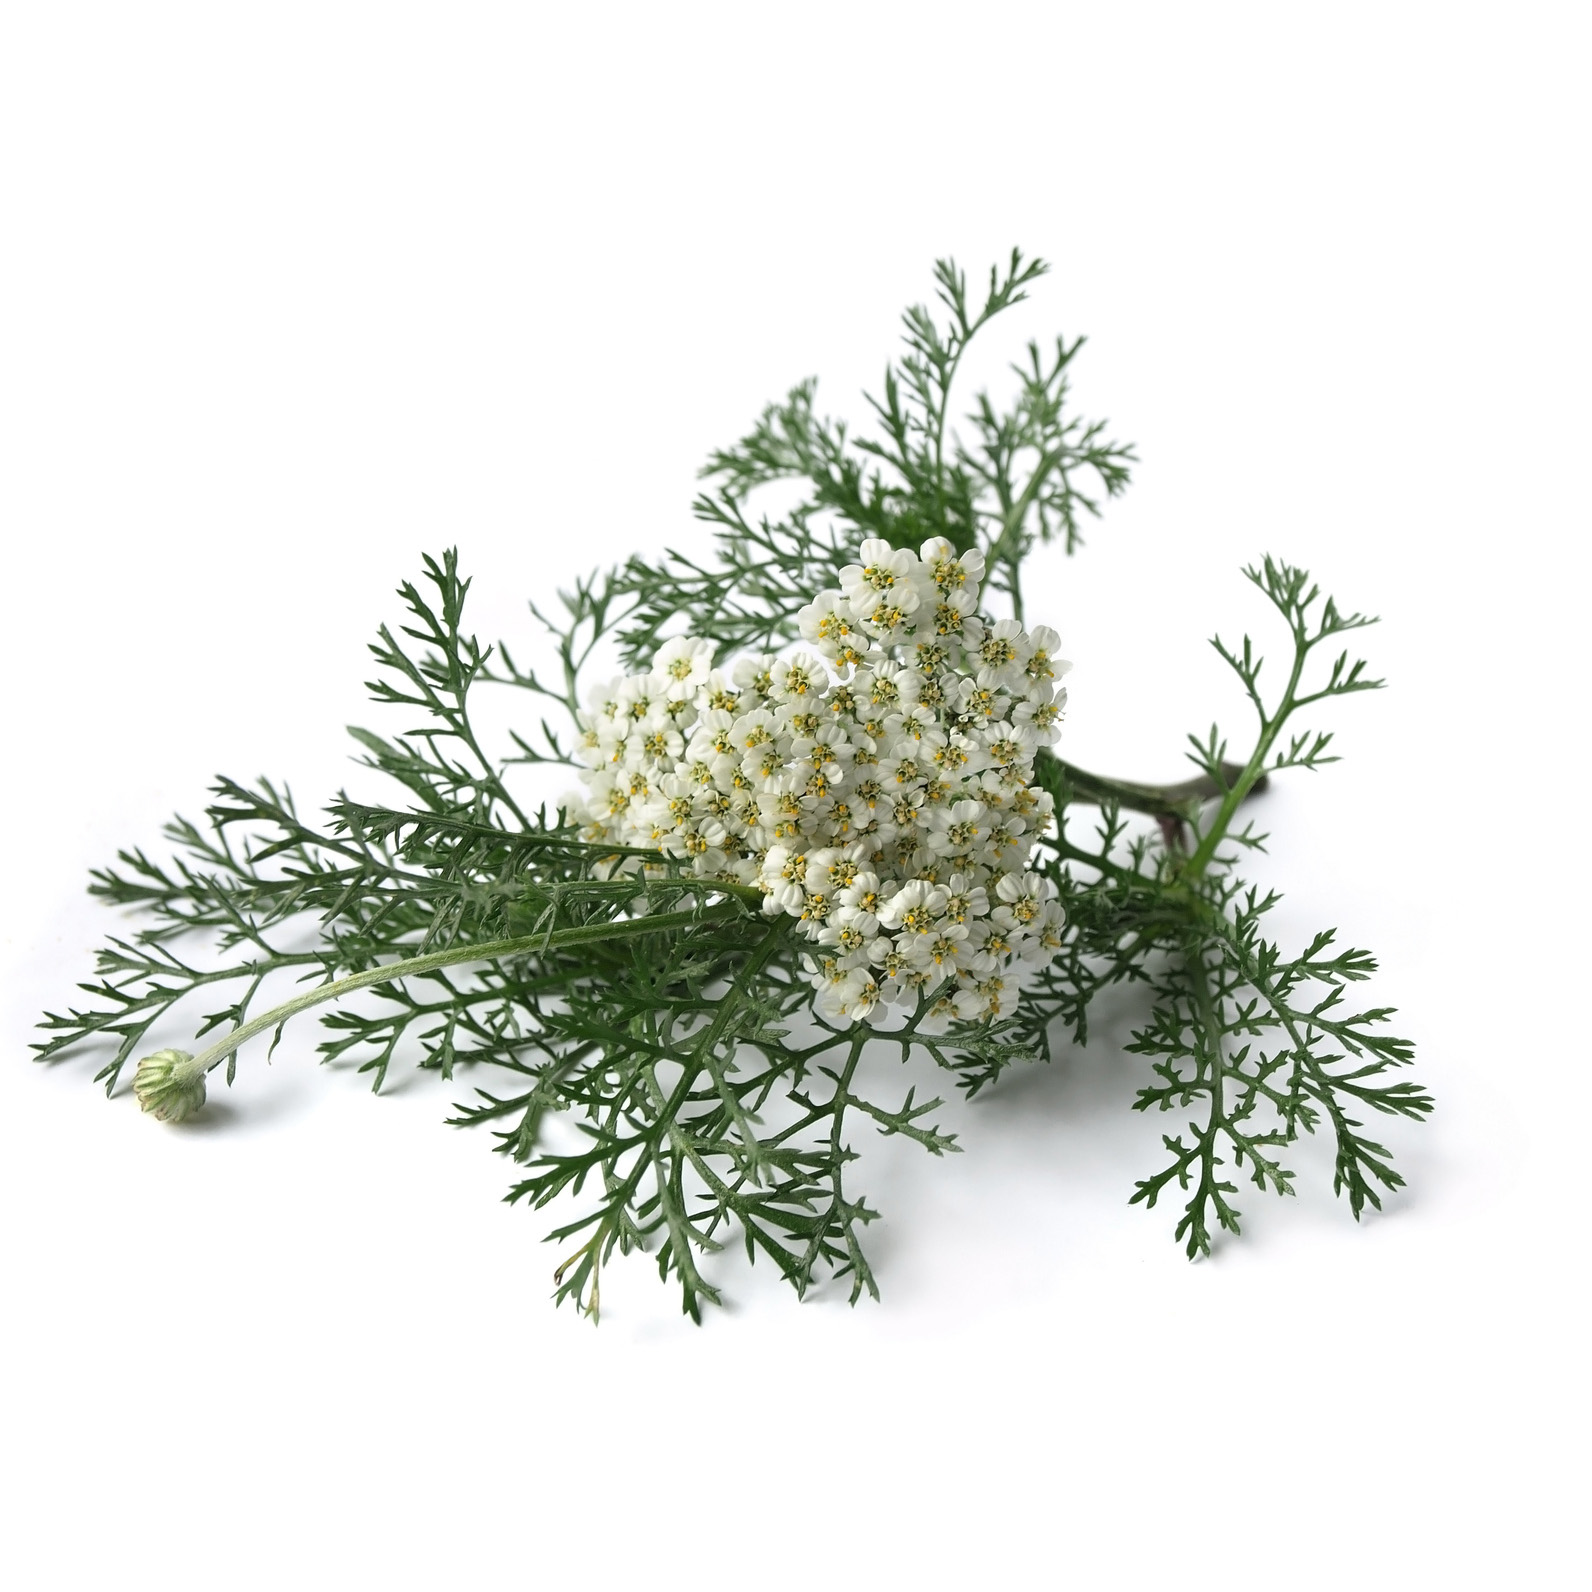 Marsh Rosemary is one of the classic Gruit herbs, used since the Middle Ages in beer brewing. Traditionally used as a remedy for puncture wounds.